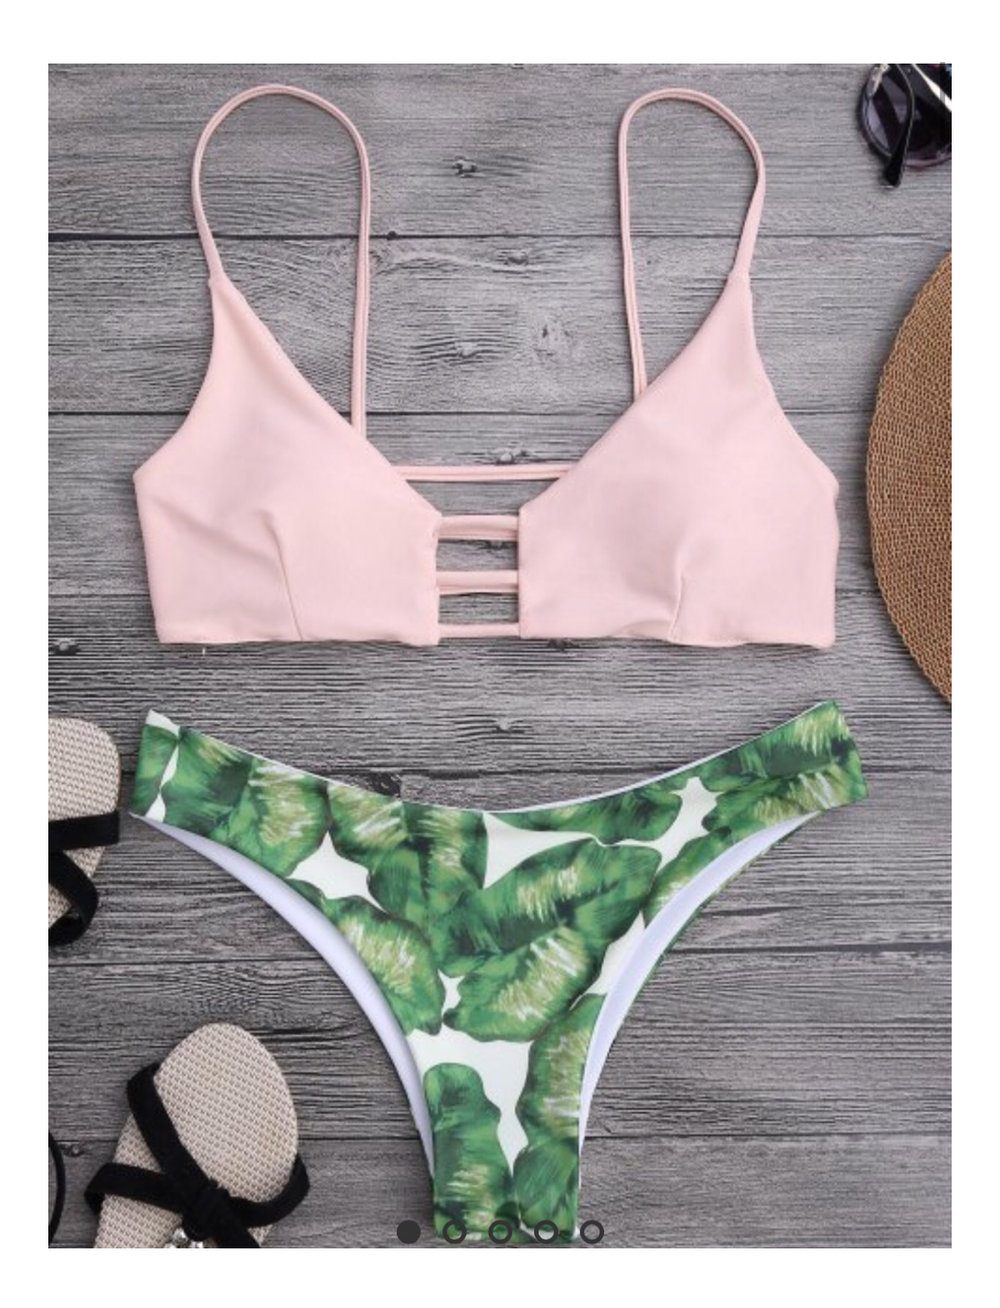 Are you buying cheap swimwear? How to know. - Read this blog post to learn where not to buy your bikinis from!